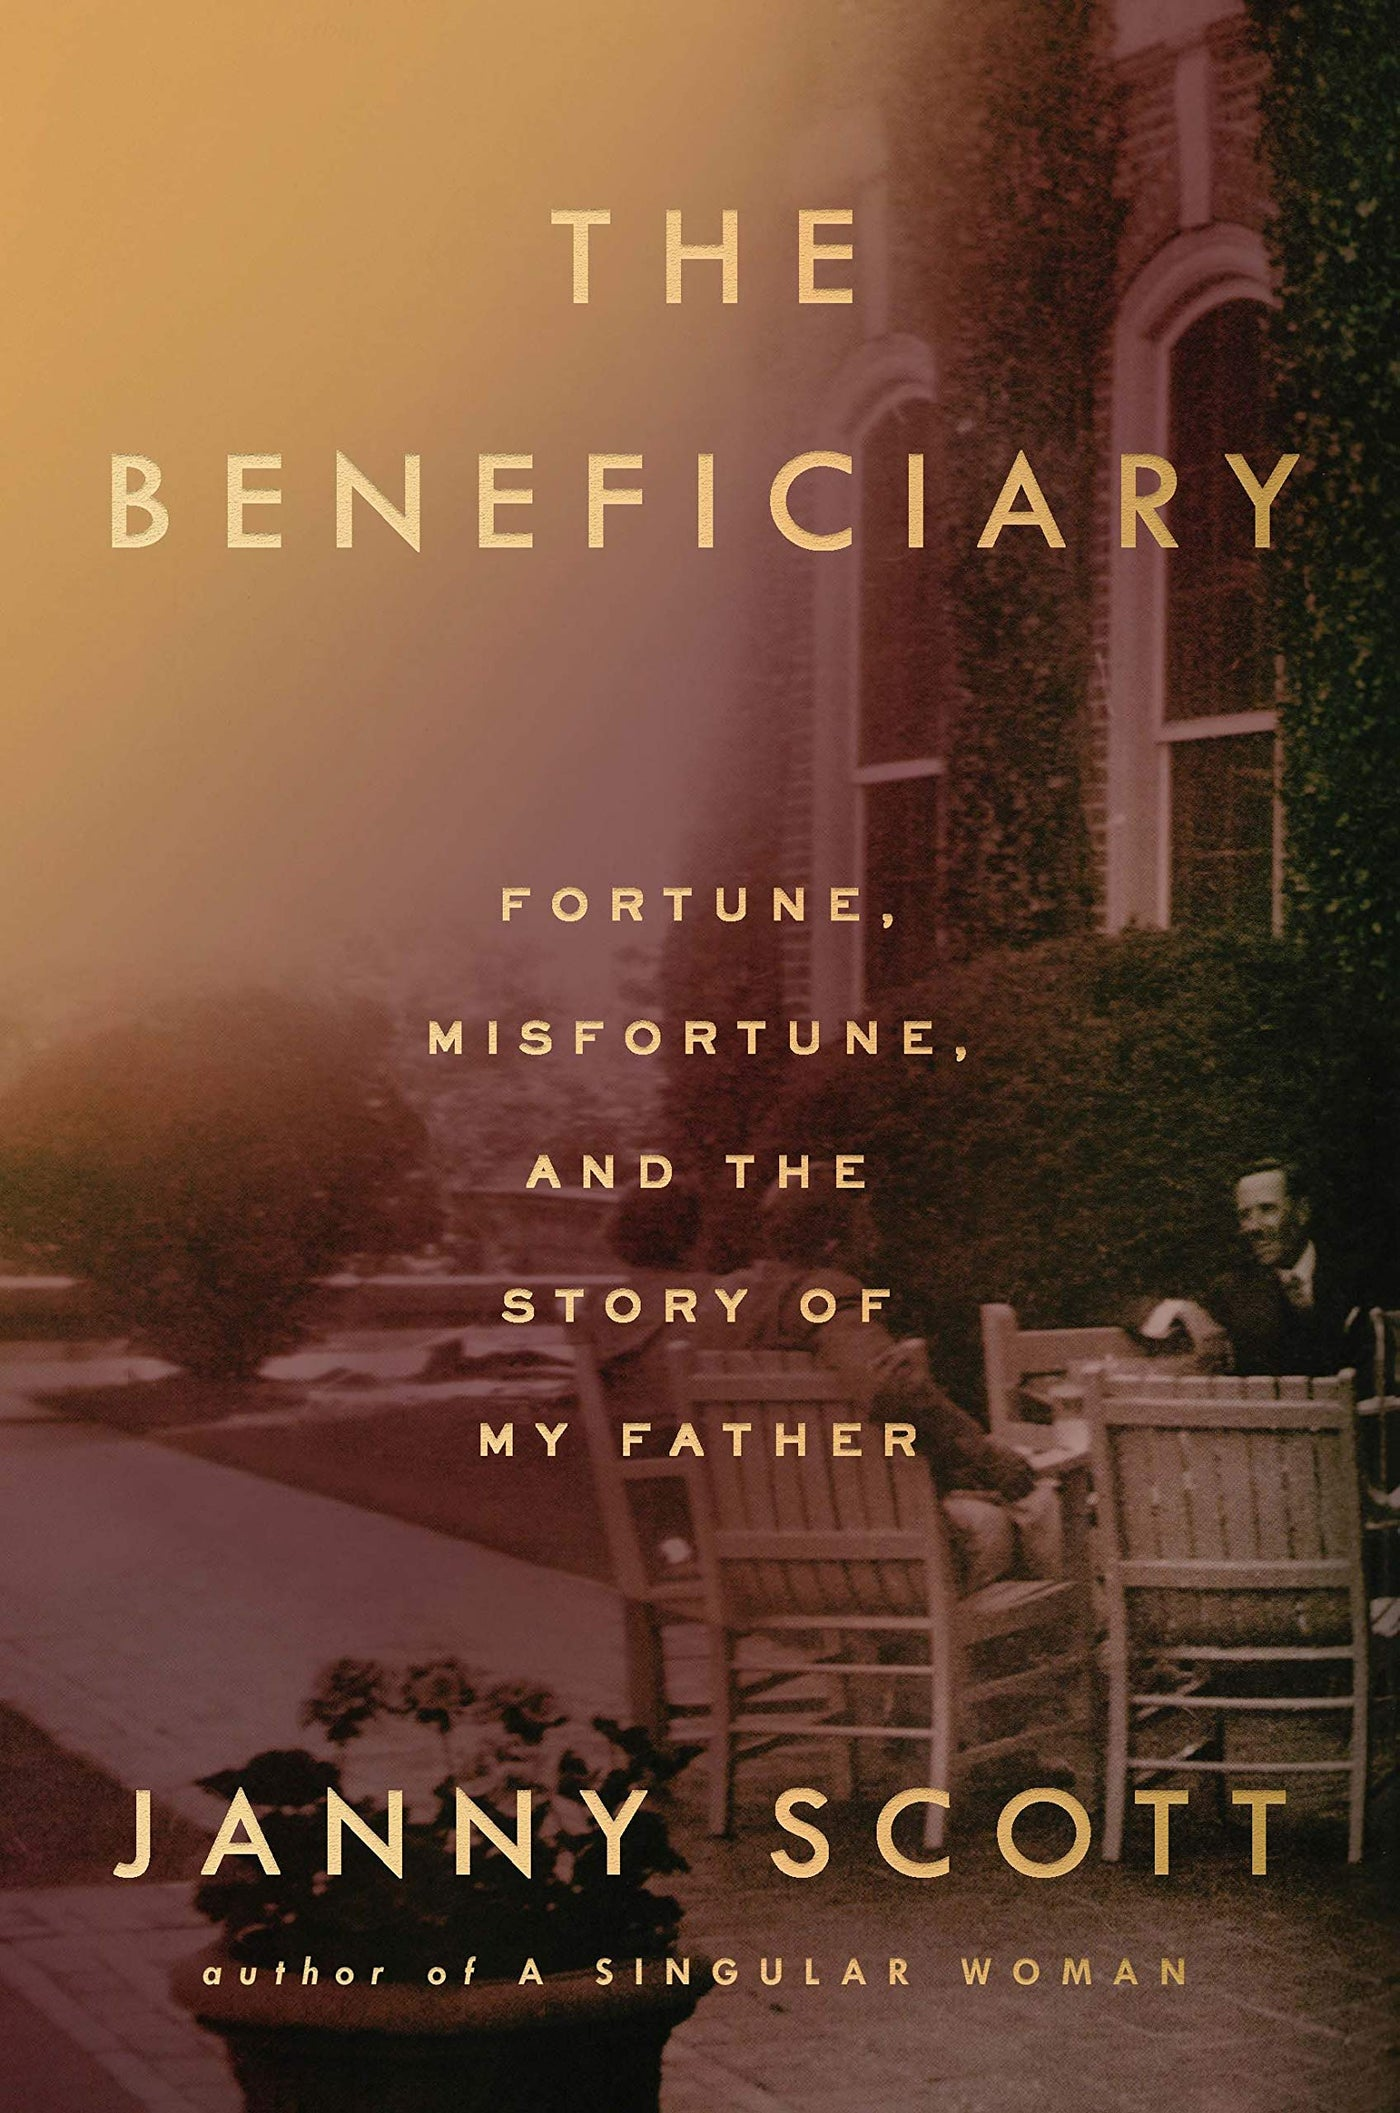 The Beneficiary: Fortune, Misfortune, and the Story of My Father by Janny Scott